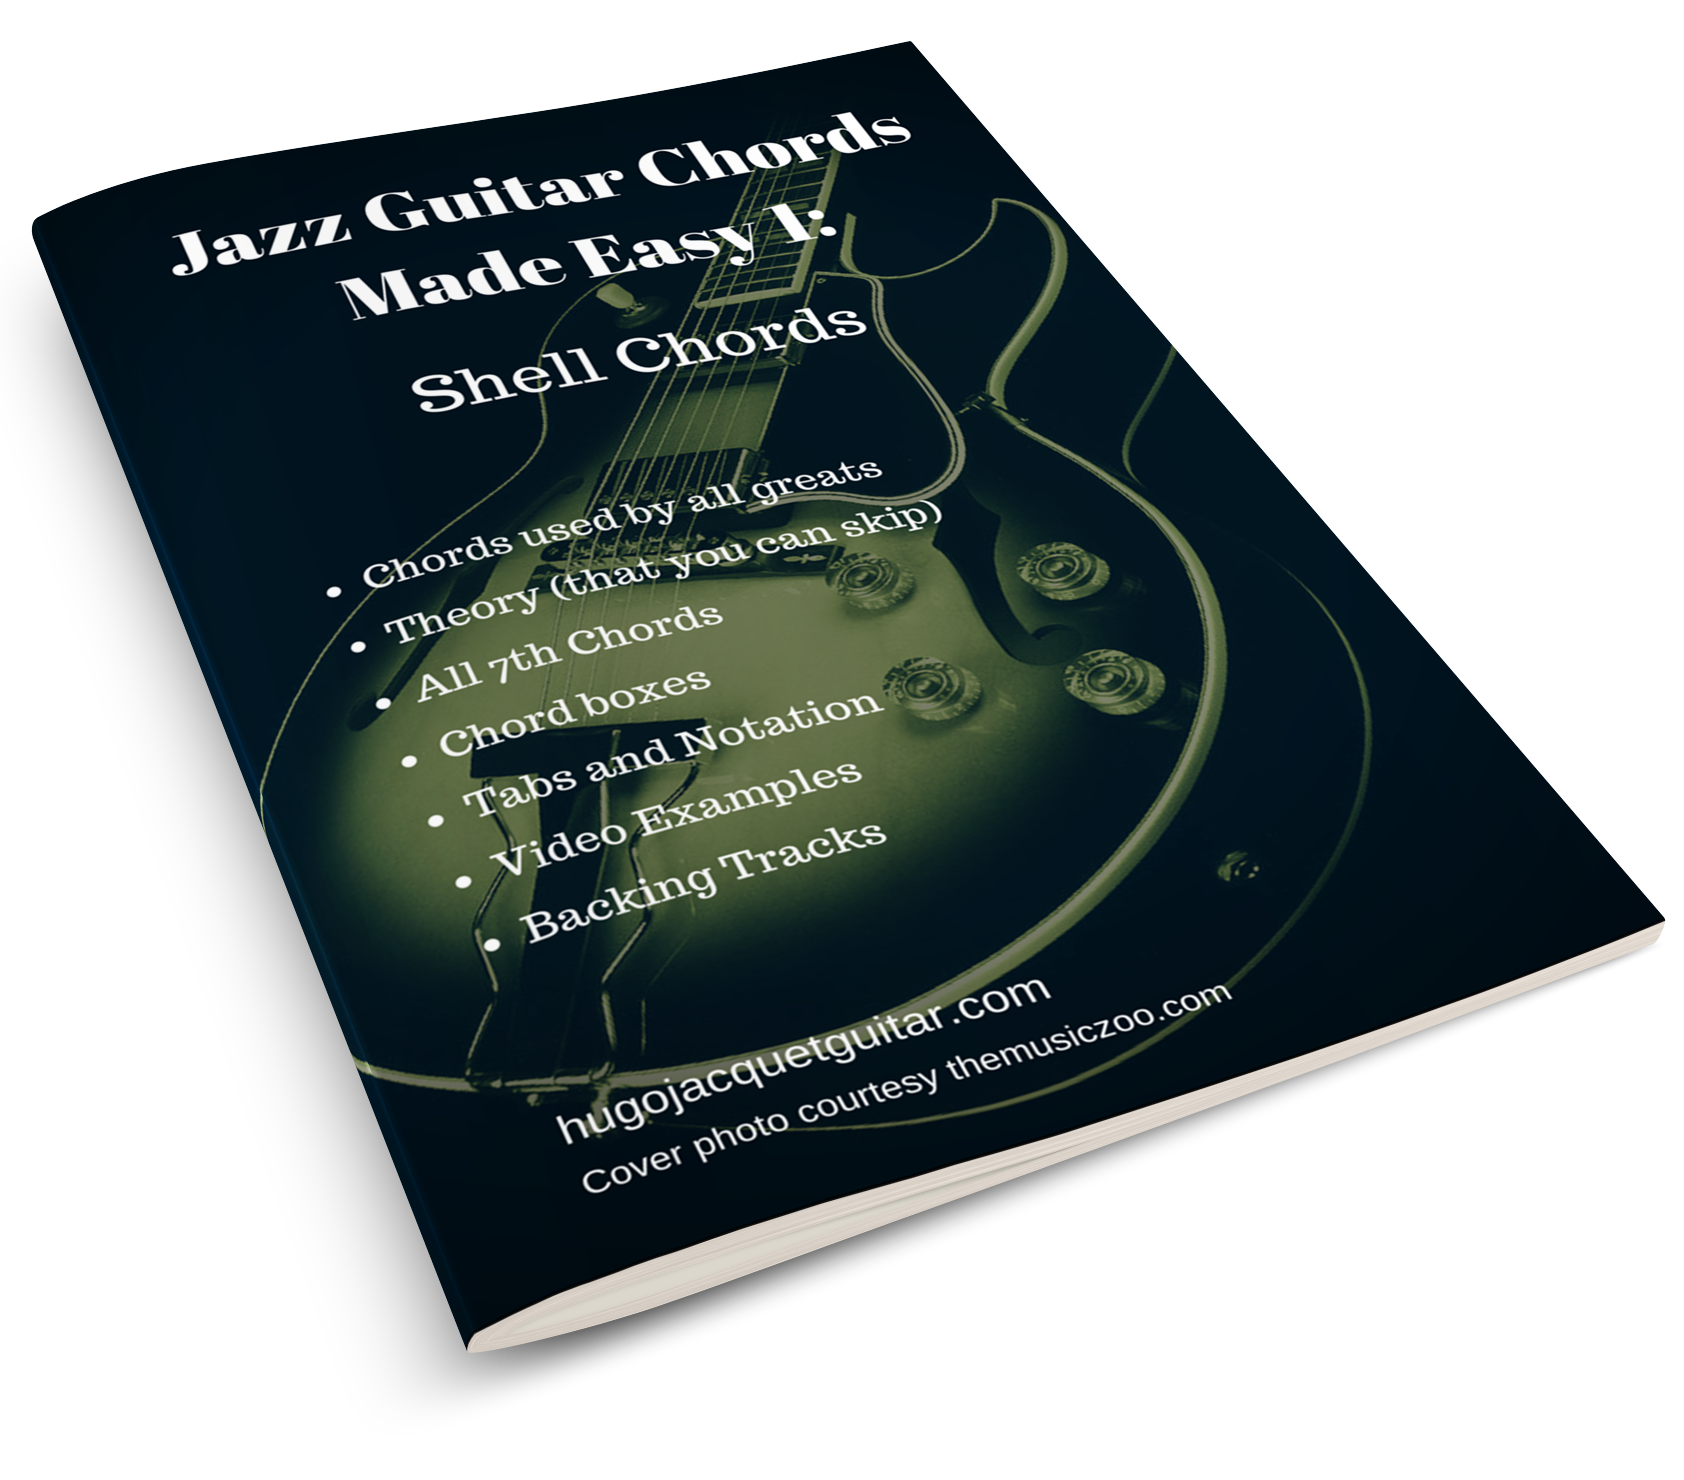 Jazz Chords Made Easy 1 Shell Chords